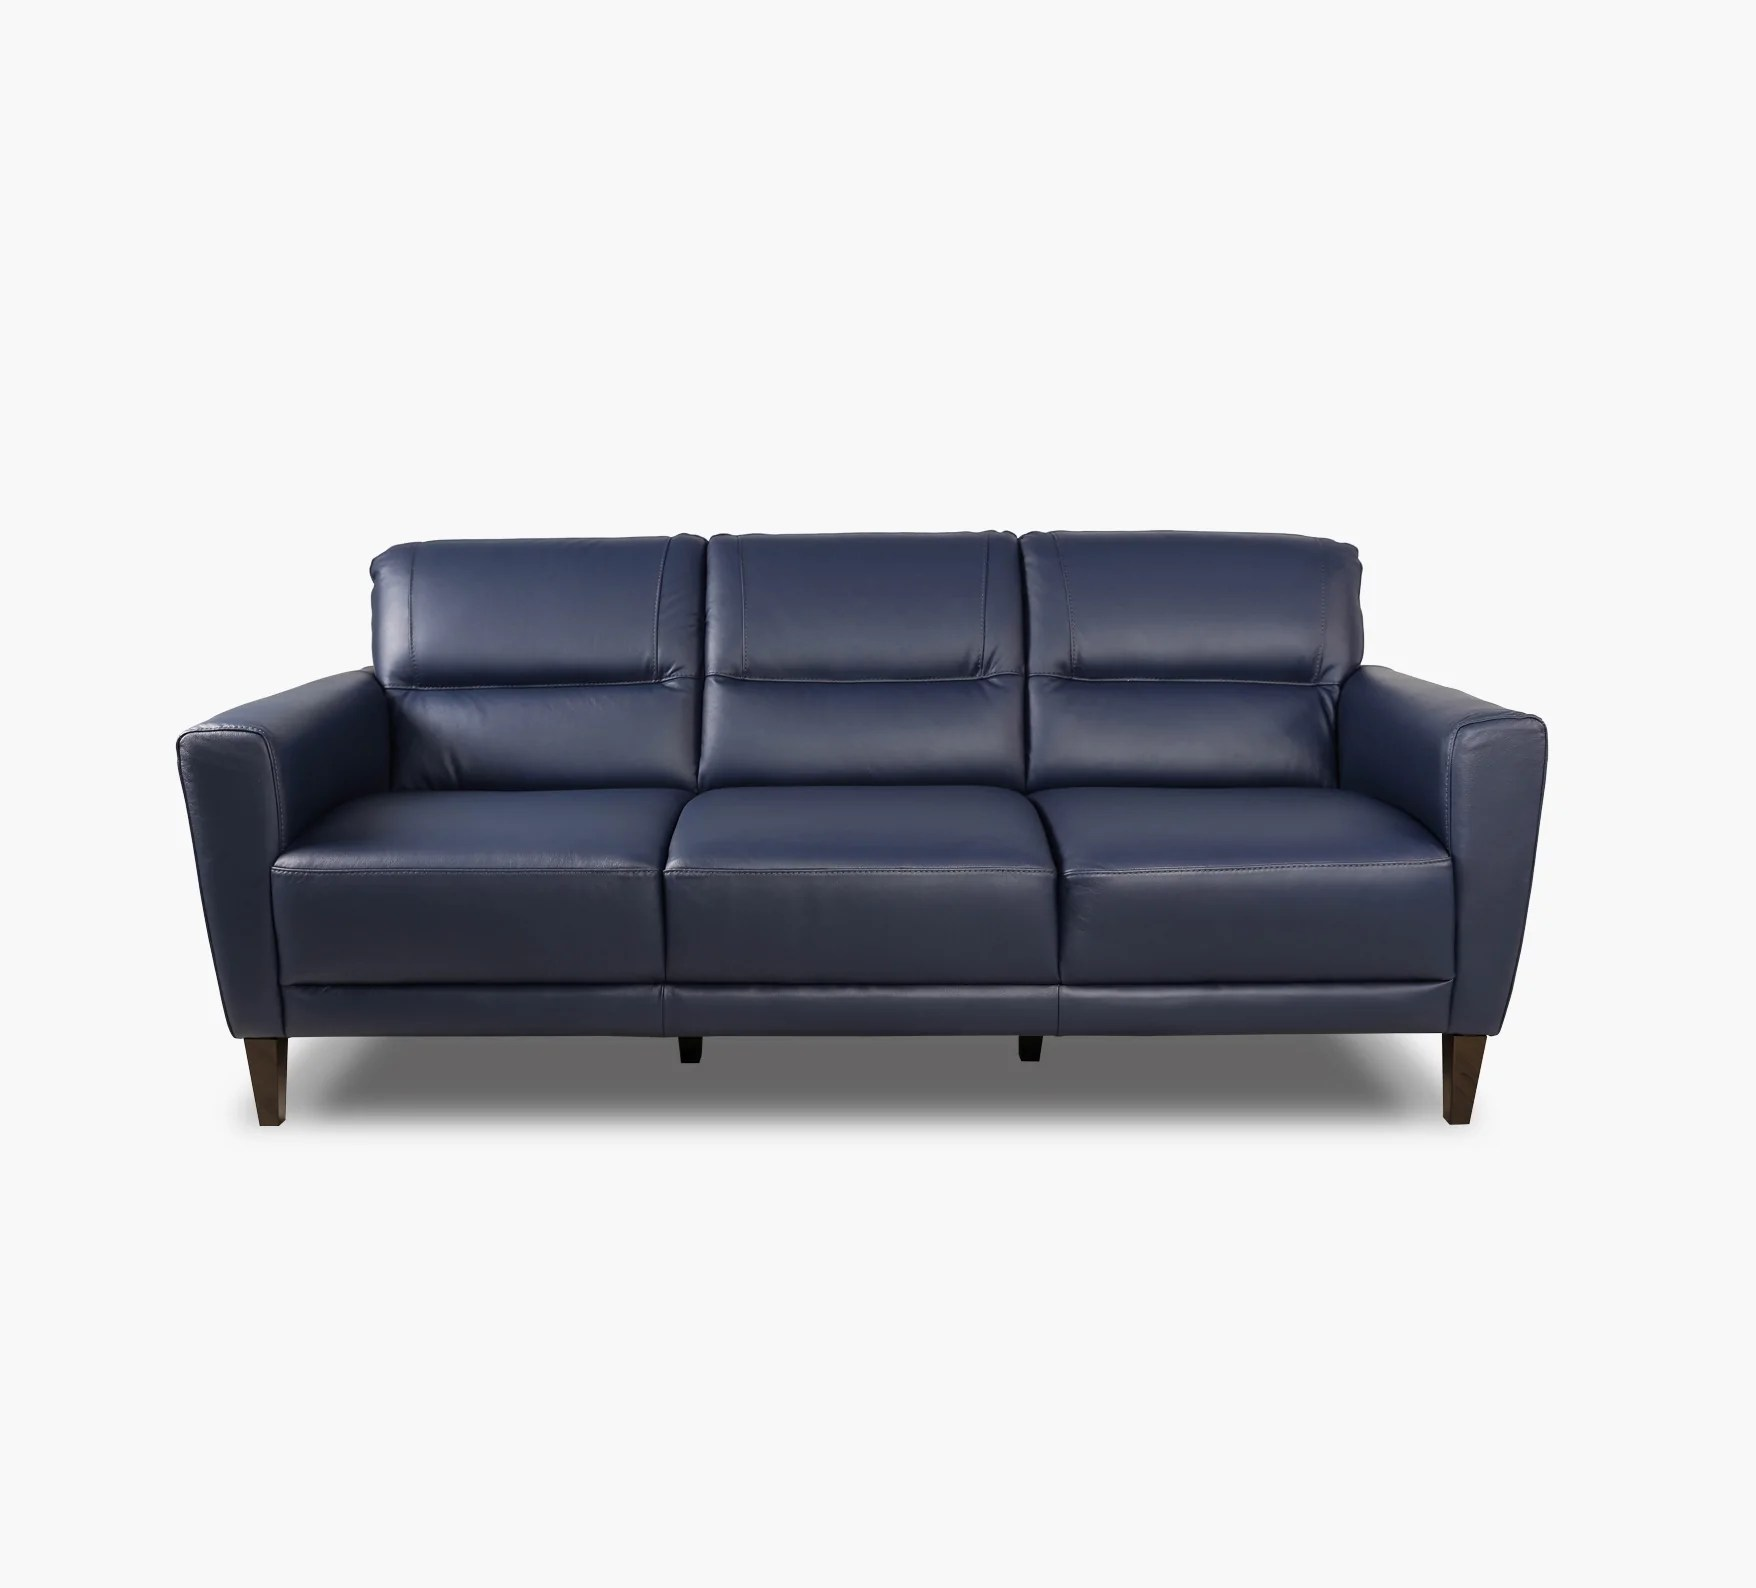 Https Www Kanesfurniture Com Daily Https Www Kanesfurniture Com Products Cutler Bay Sofa 2021 05 05t21 30 16 04 00 Daily Https Cdn Shopify Com S Files 1 0075 2815 3206 Products 001159284 Jpg V 1582130440 Cutler Bay Sofa Https Www